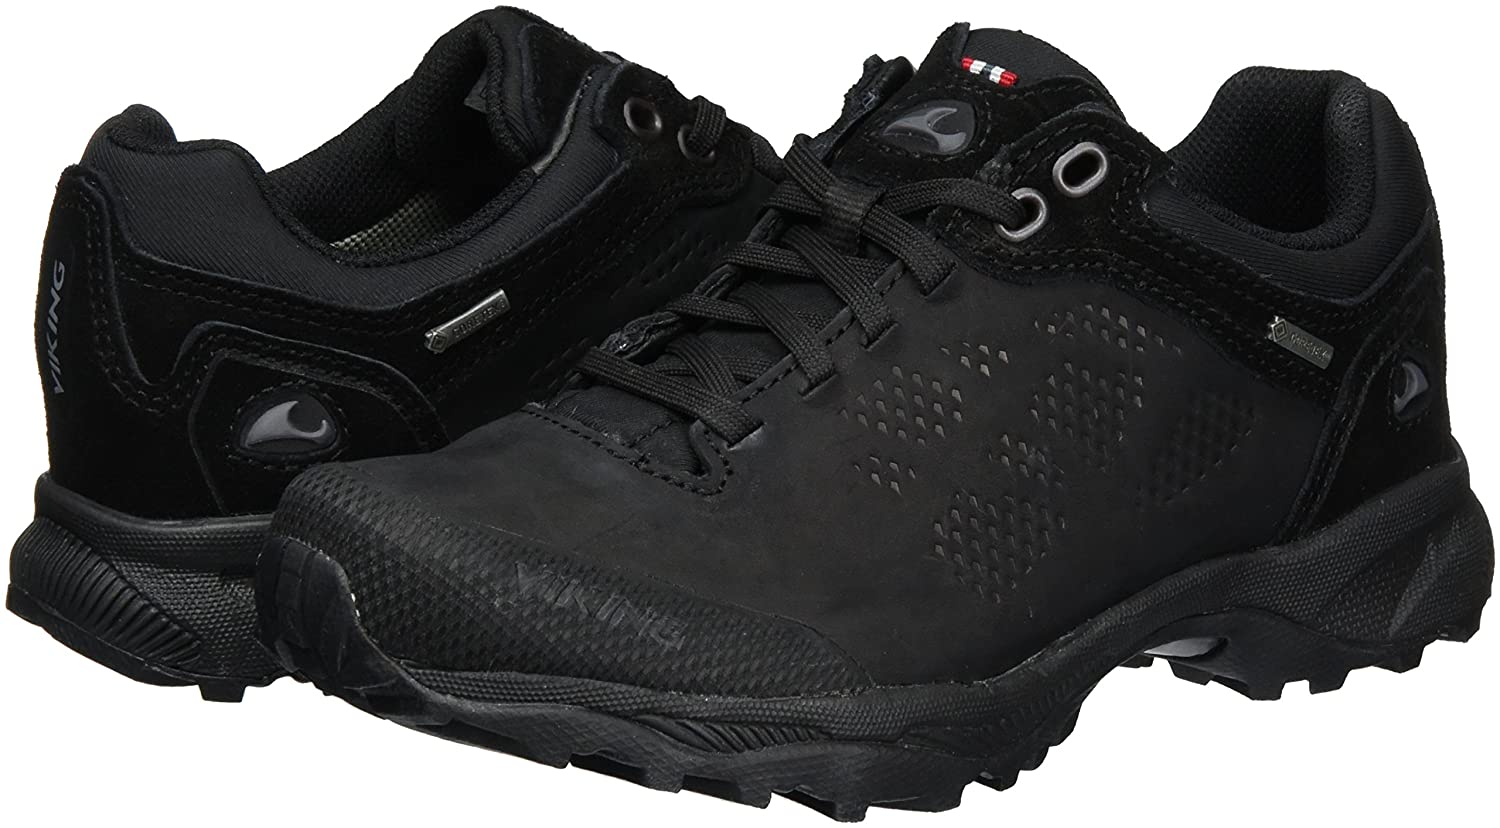 Viking Unisex-Erwachsene Quarter Iii Iii Iii Leather GTX Outdoor Fitnessschuhe 5f3bb7